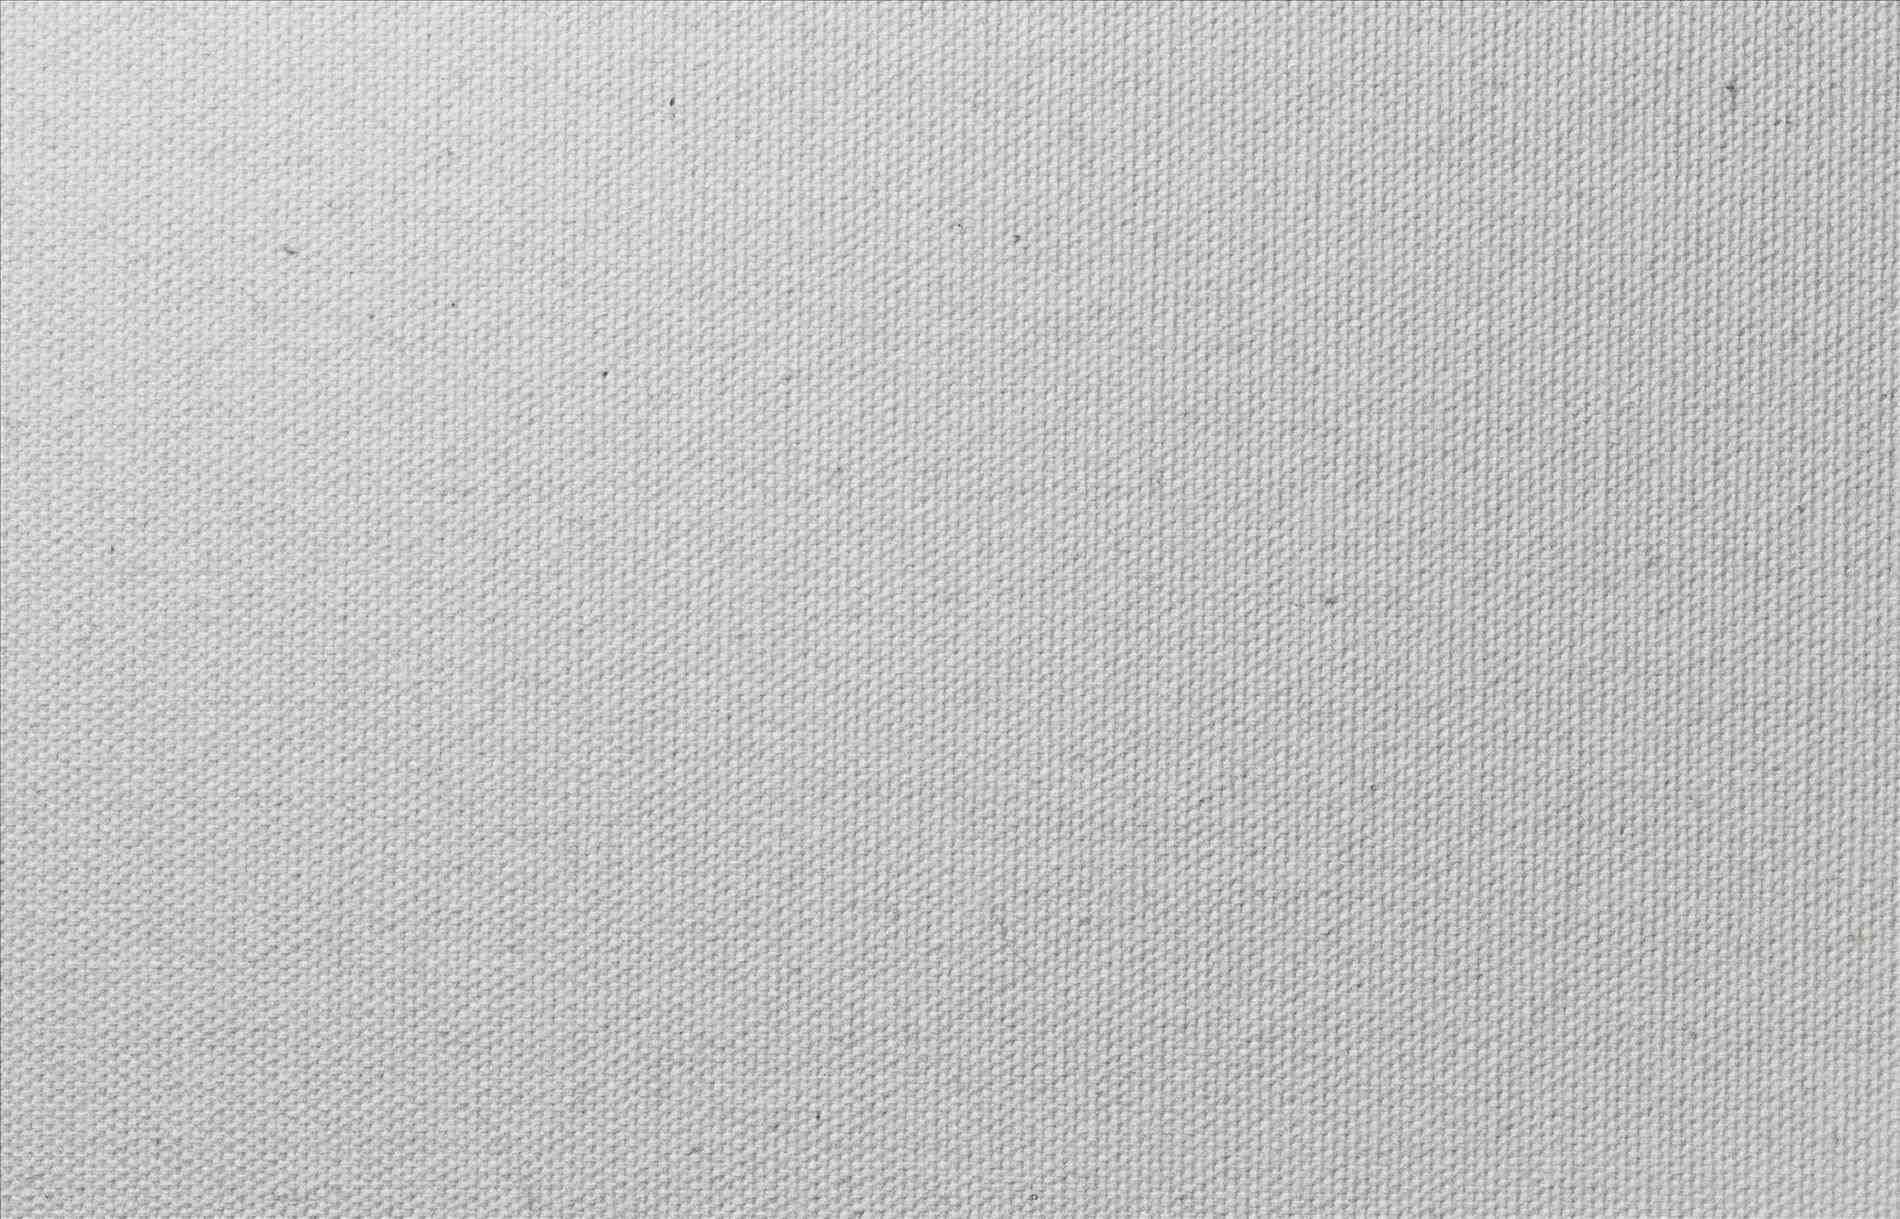 Blank Blank Painting Canvas Texture Canvas Background Painting ...